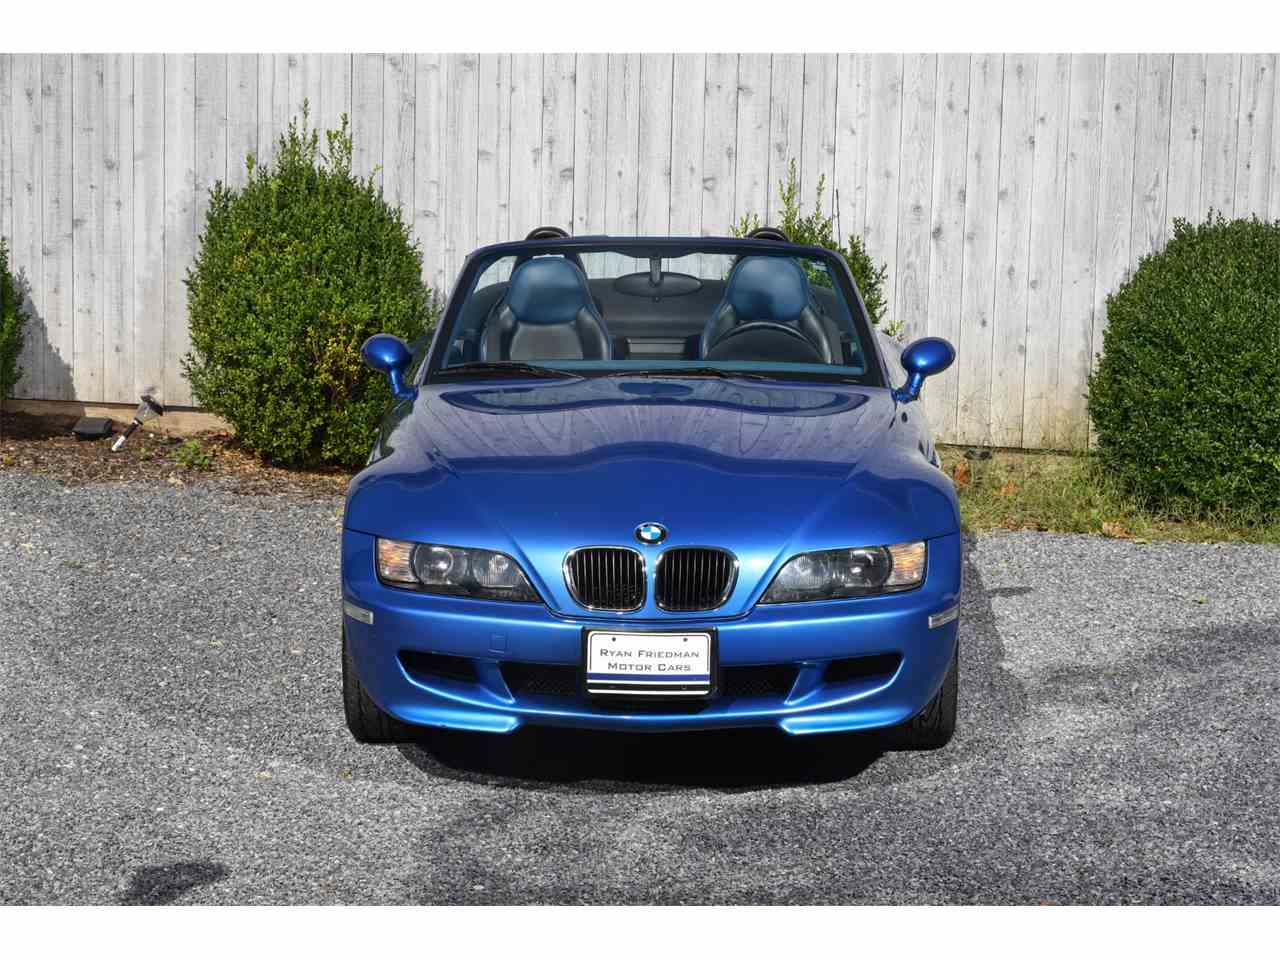 1999 BMW M Roadster for Sale | ClassicCars.com | CC-1046181